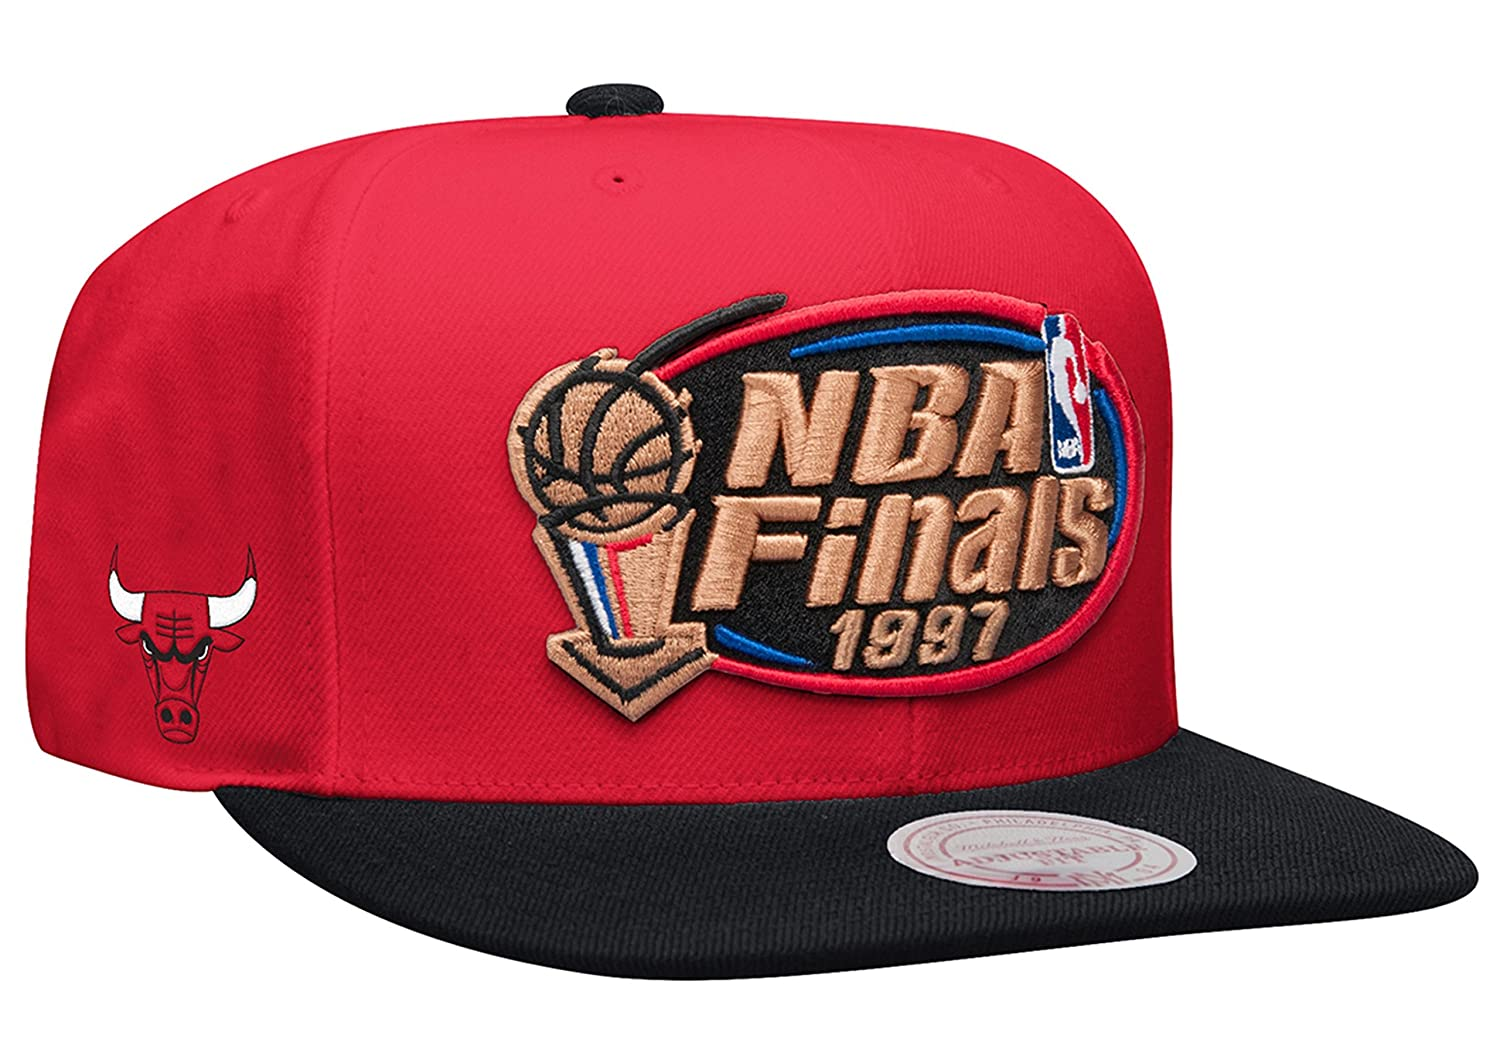 8e35b7f7640 Chicago Bulls Mitchell   Ness Red 1997 Finals Commemorative Snapback Hat at  Amazon Men s Clothing store